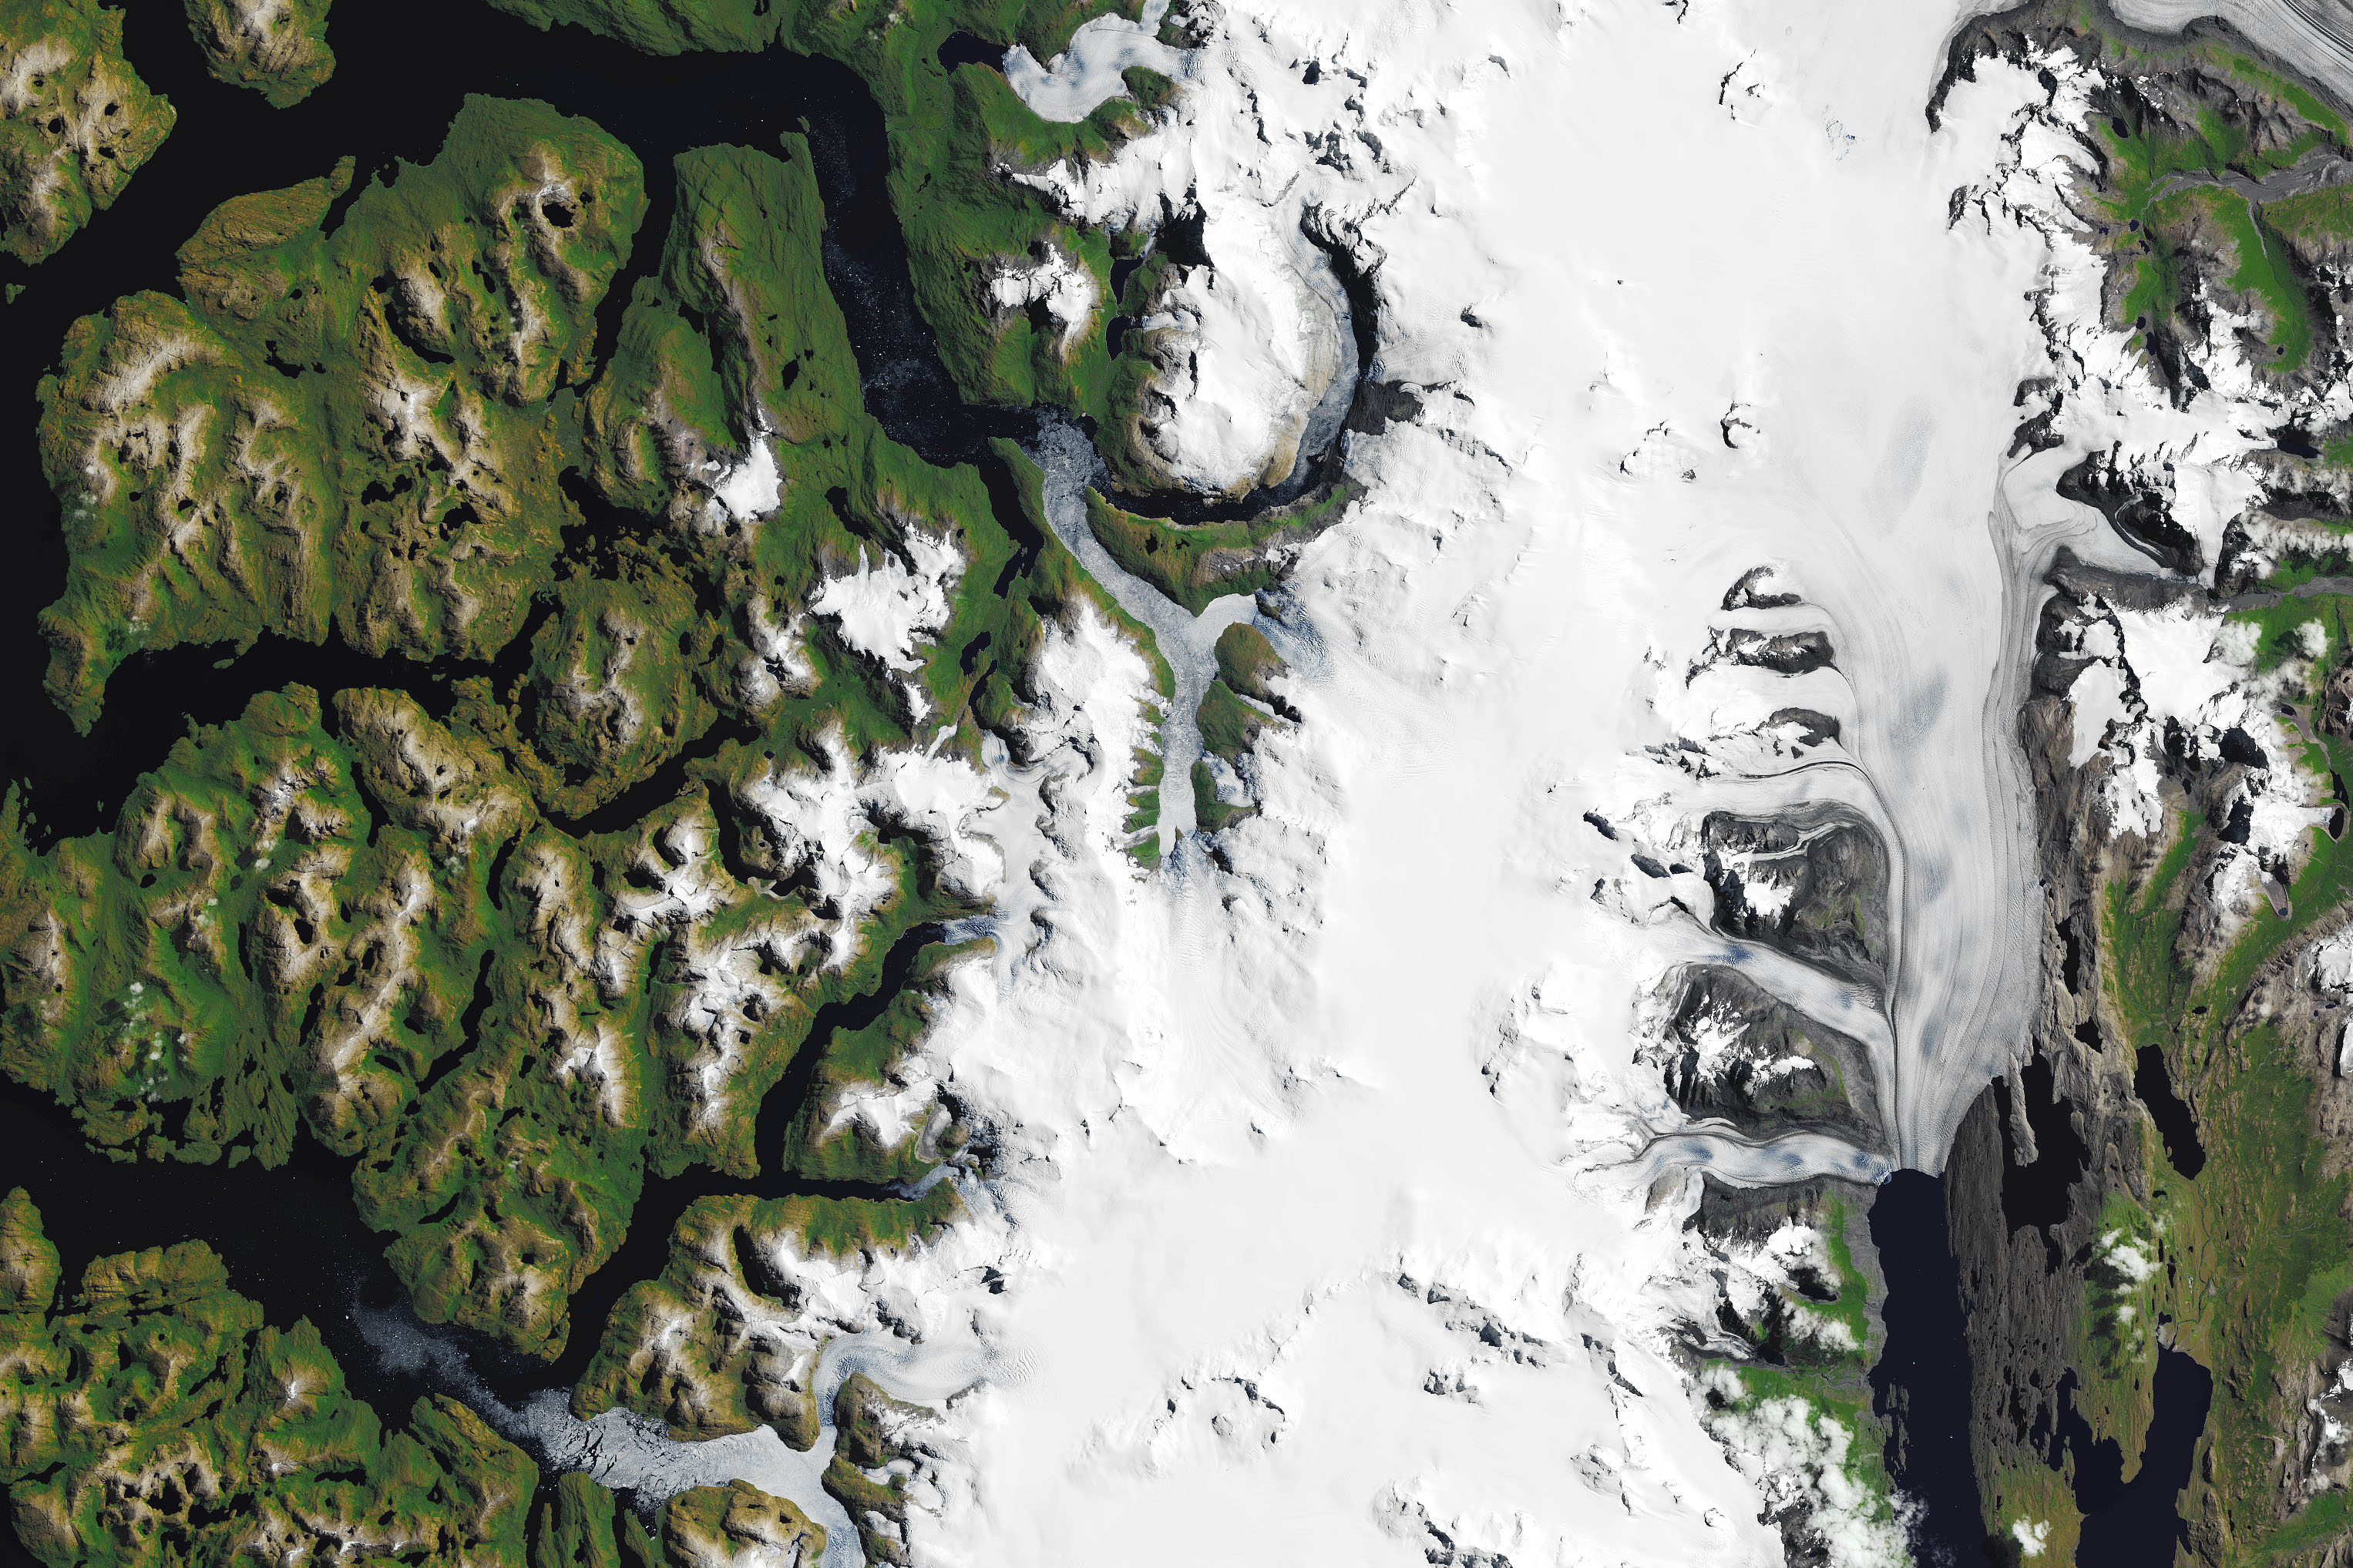 Today's Image of the Day features a look at the HPS-12 glacier, which stretches 13,000 square miles across Chile and Argentina.